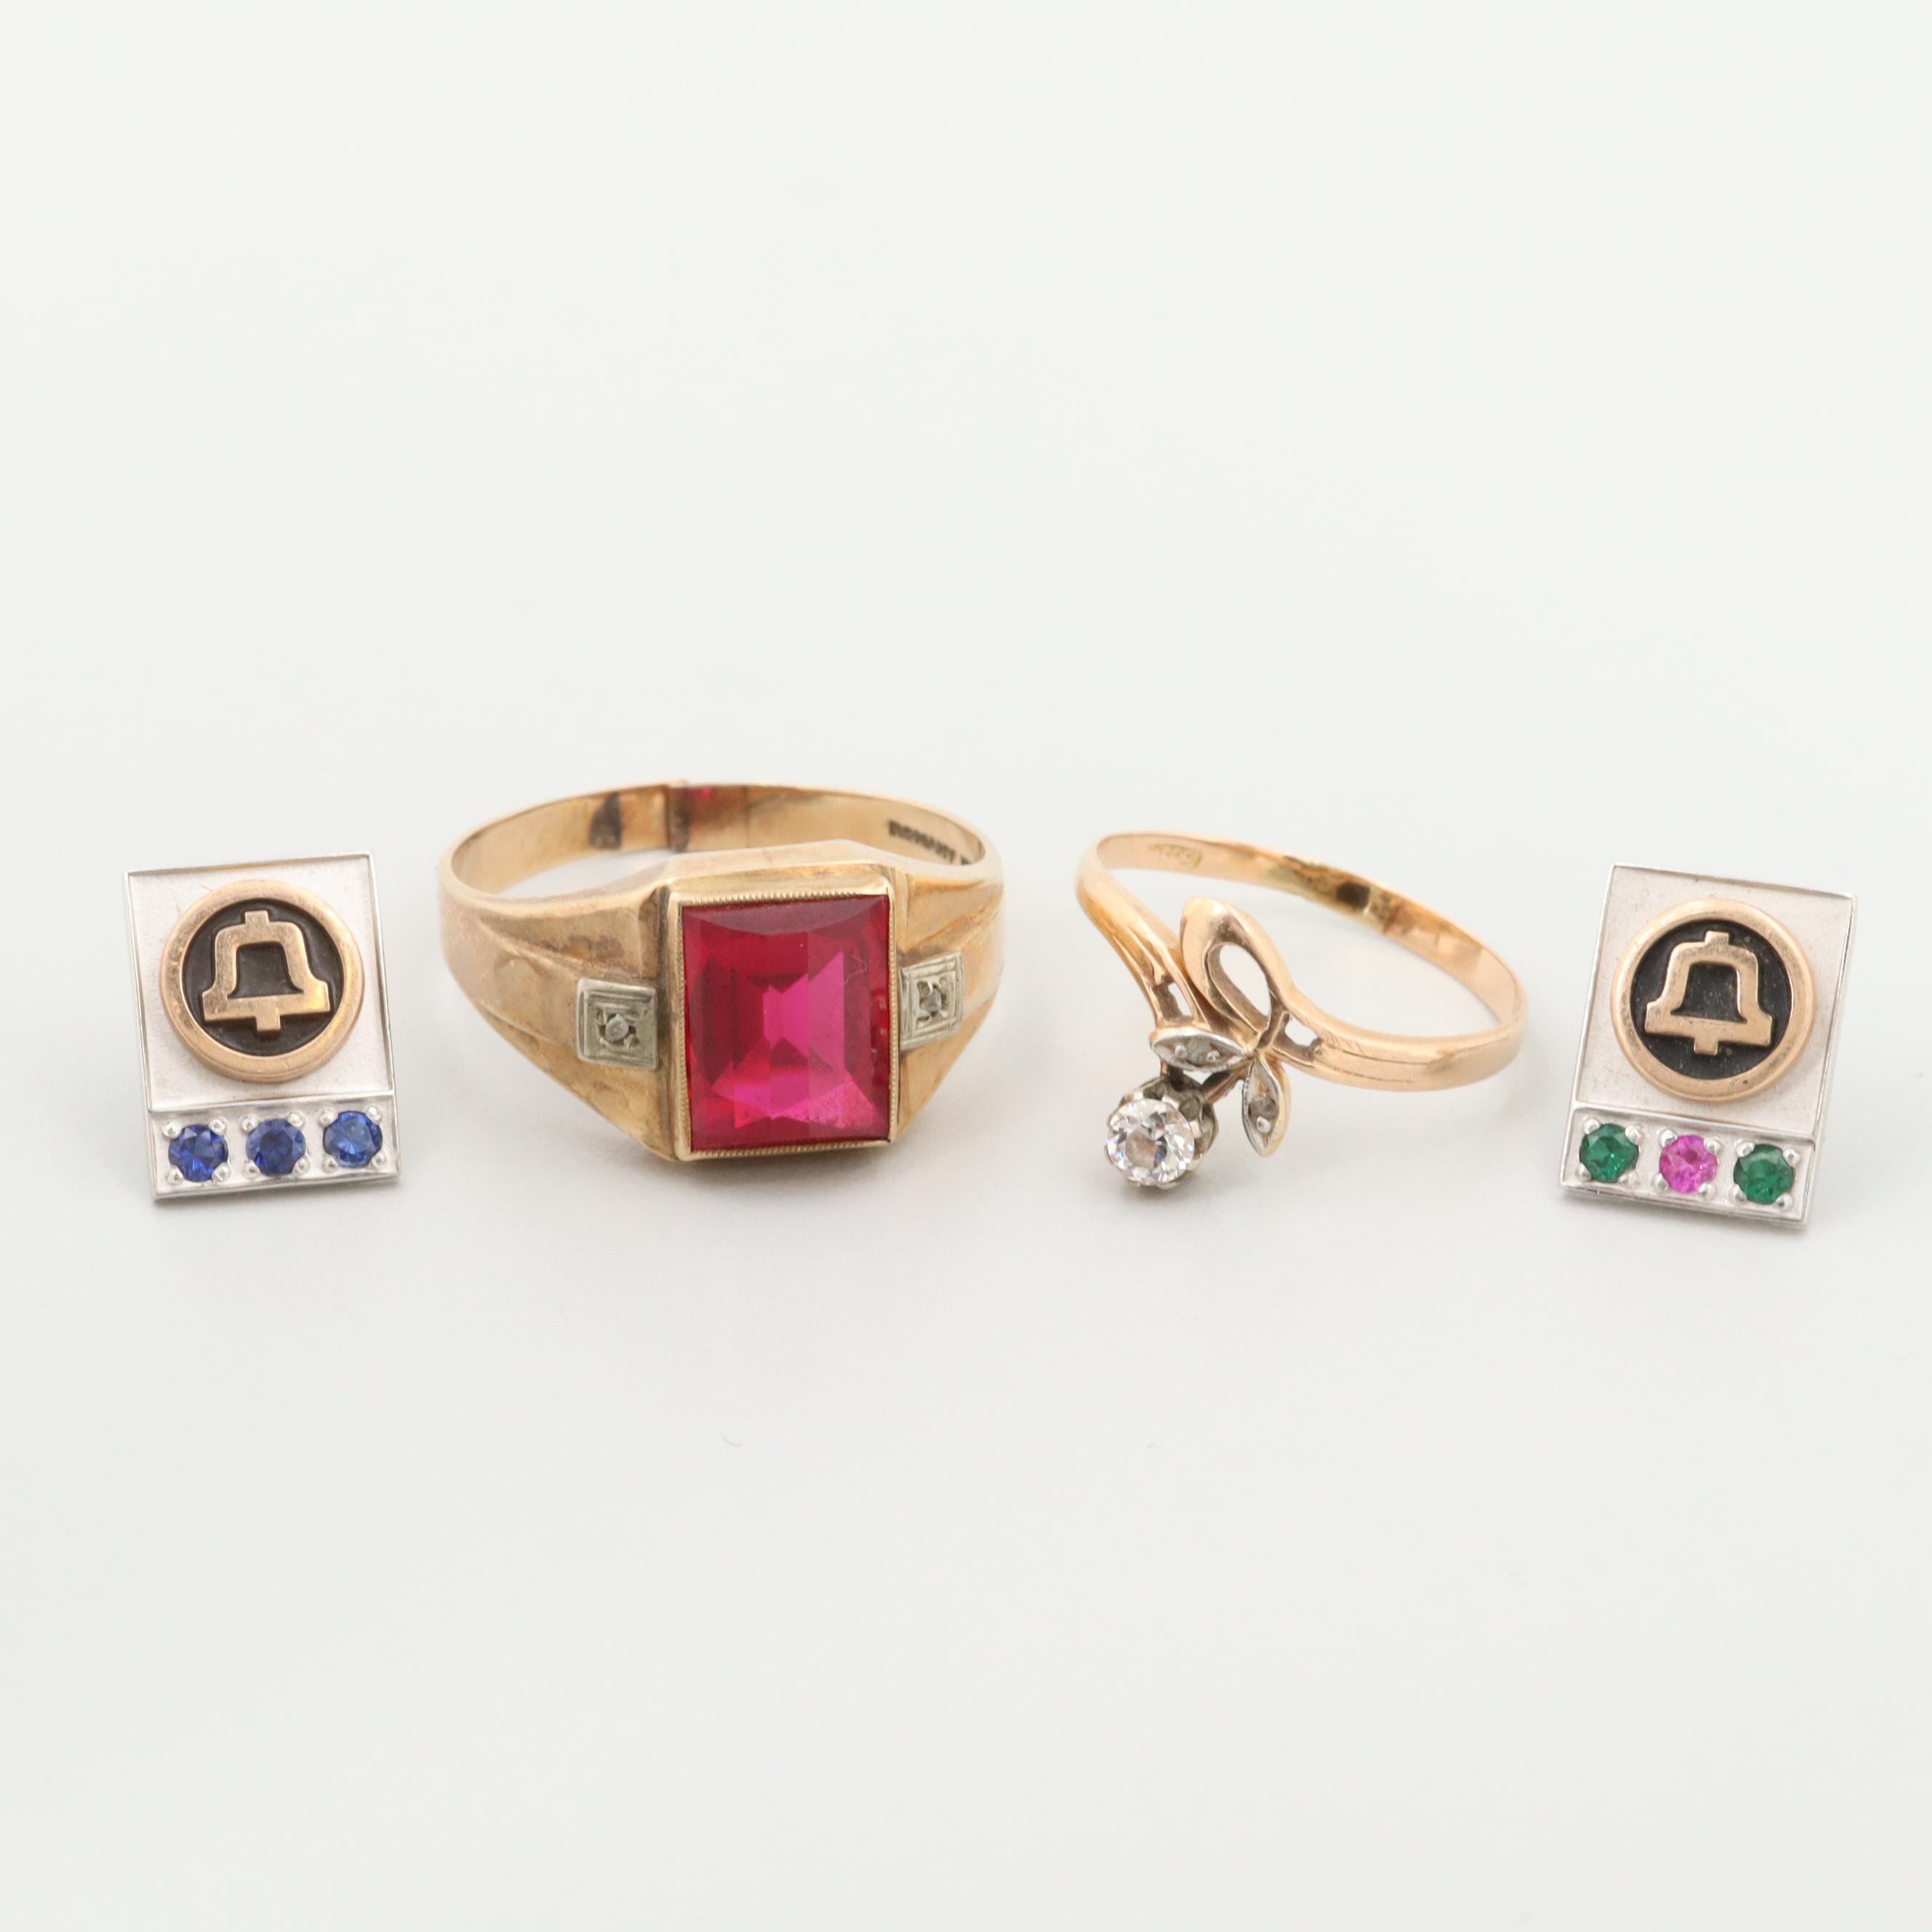 10K and 14K Gold Synthetic Gemstone and Diamond Rings and Pins